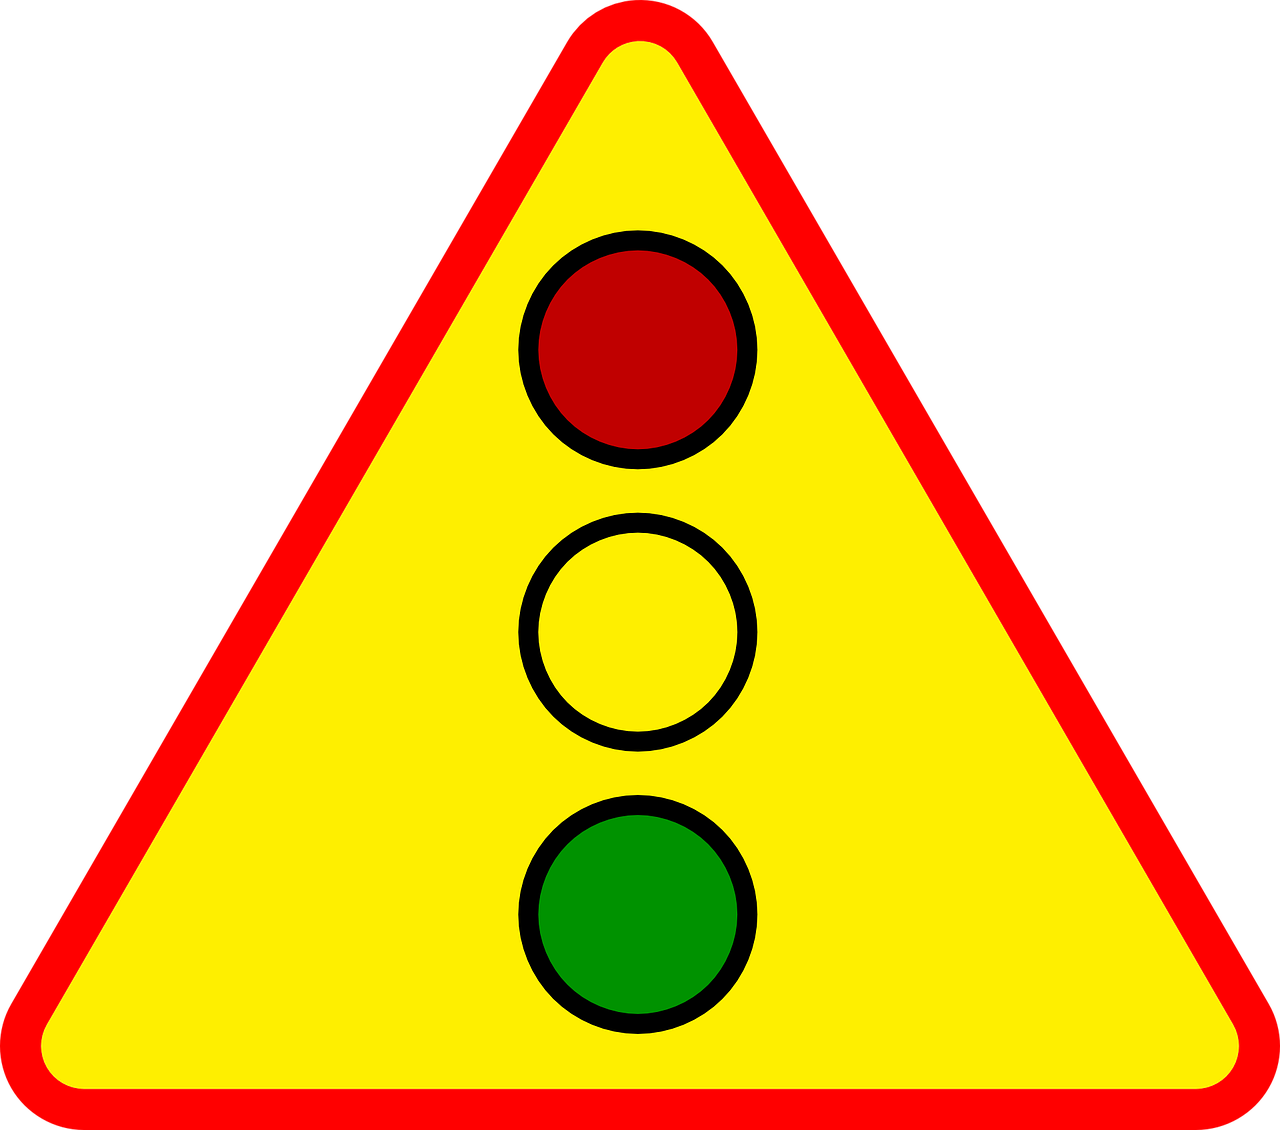 traffic signs triangle free photo